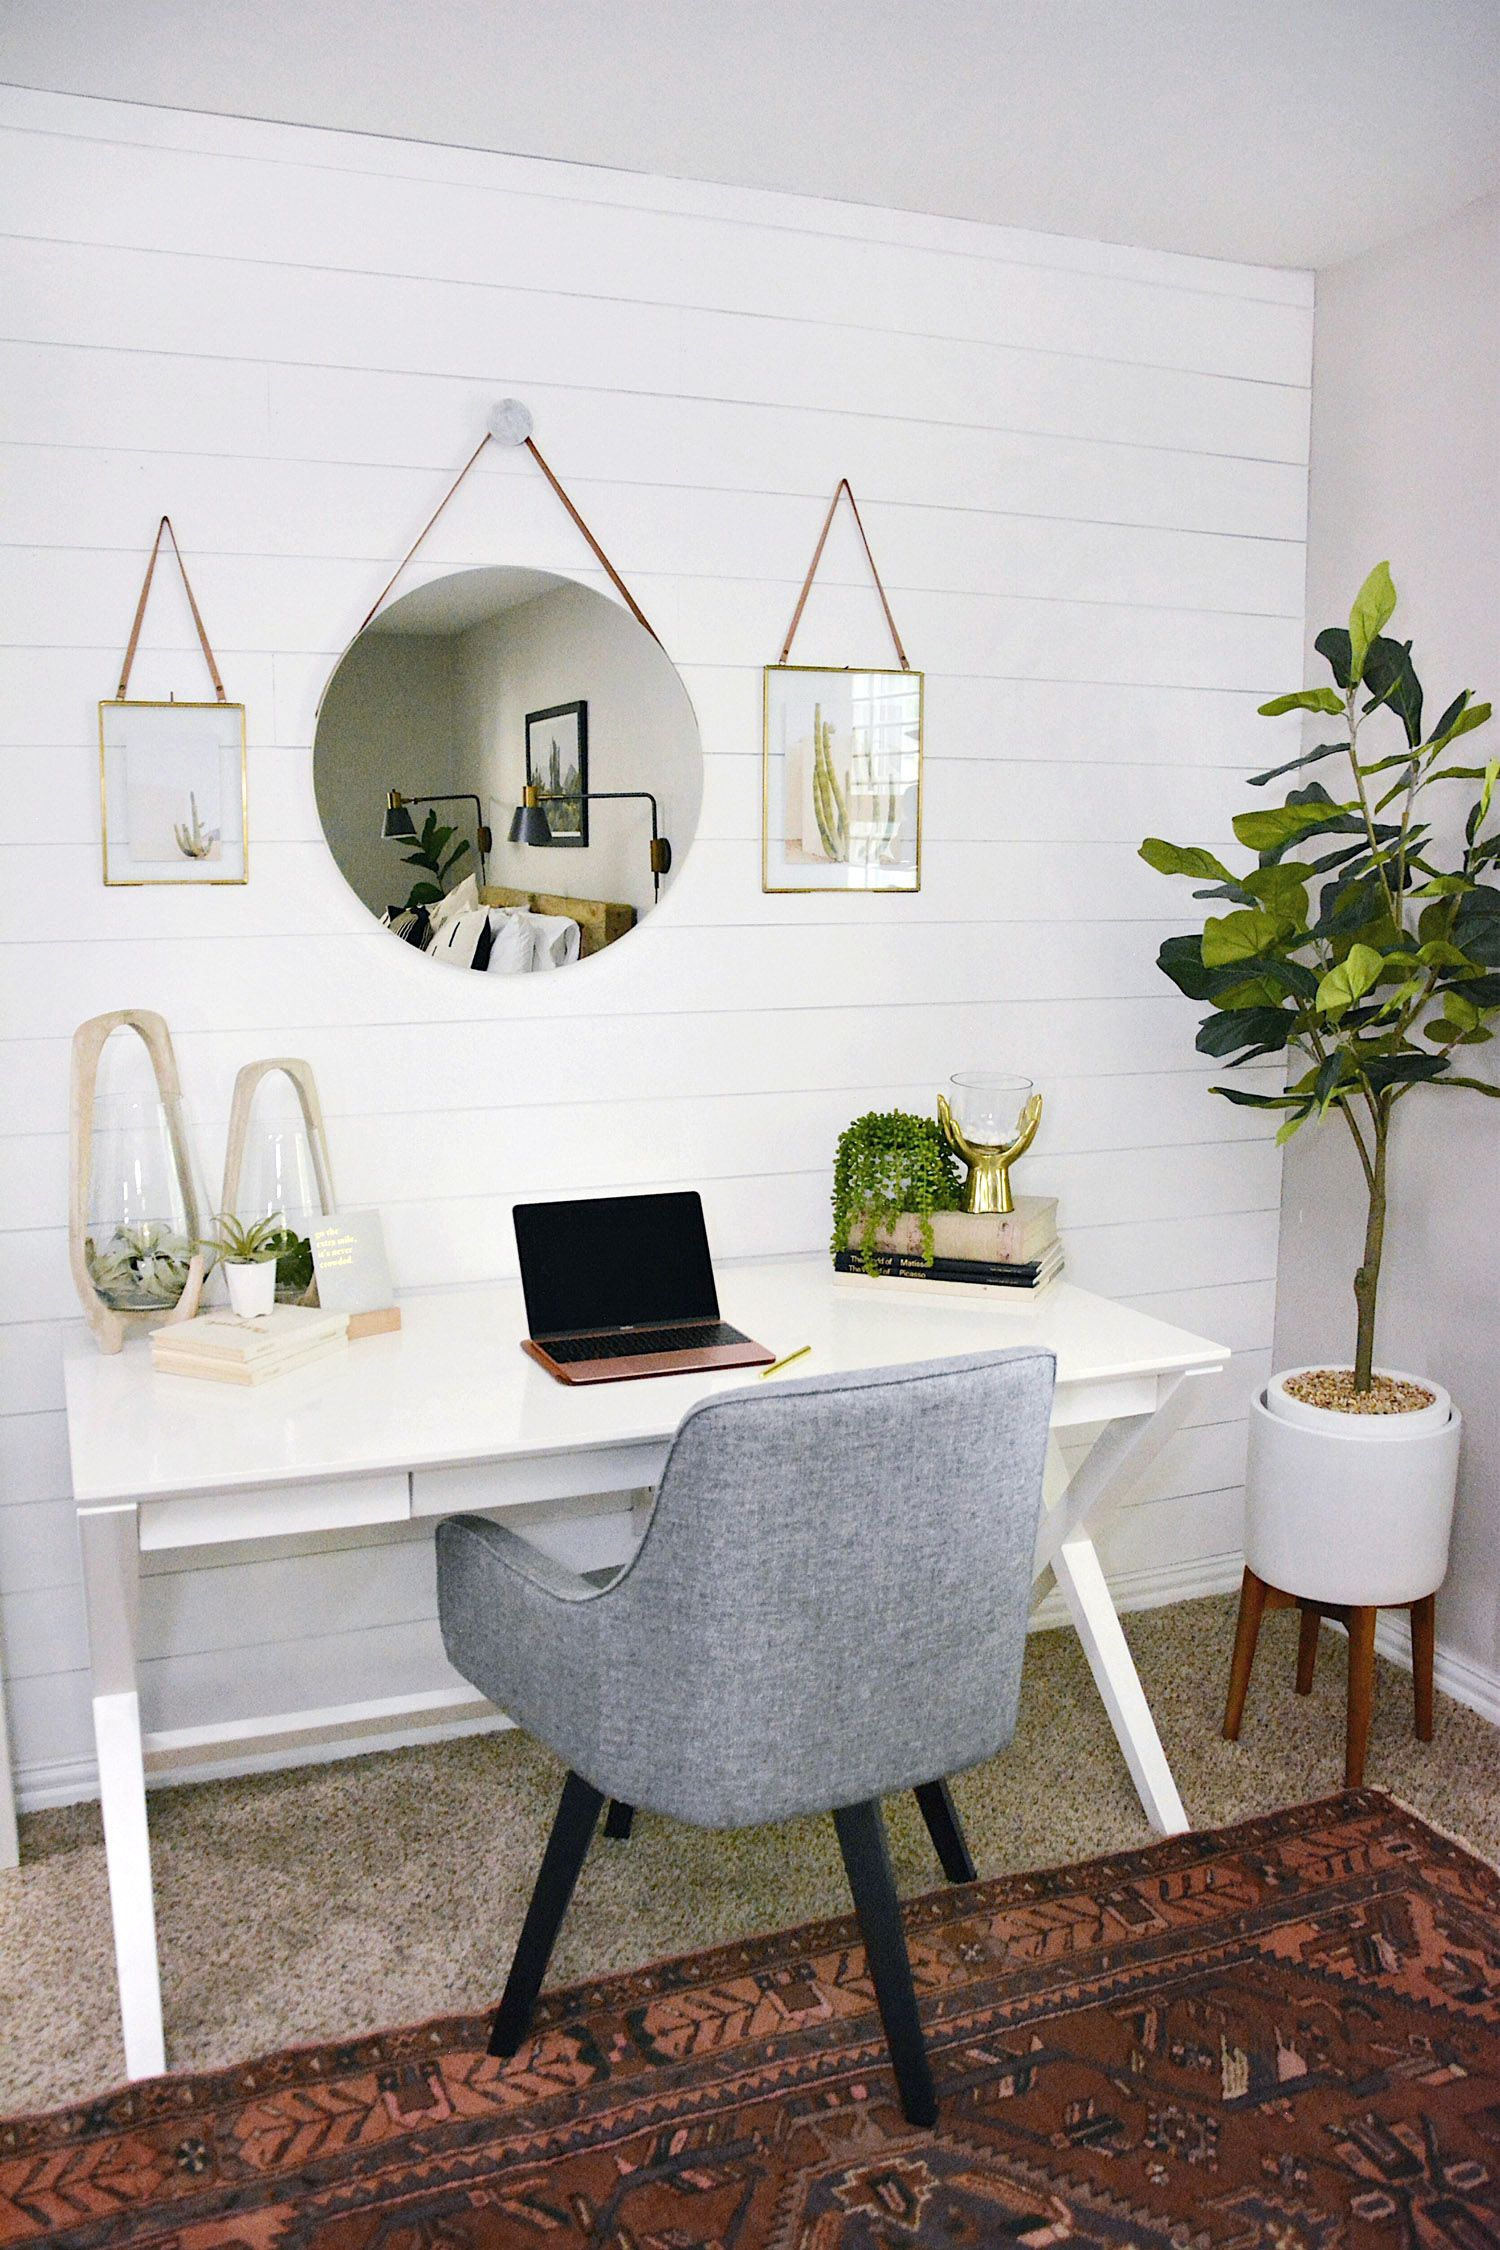 Home Office Mirror Collage Office Room Decor House Interior